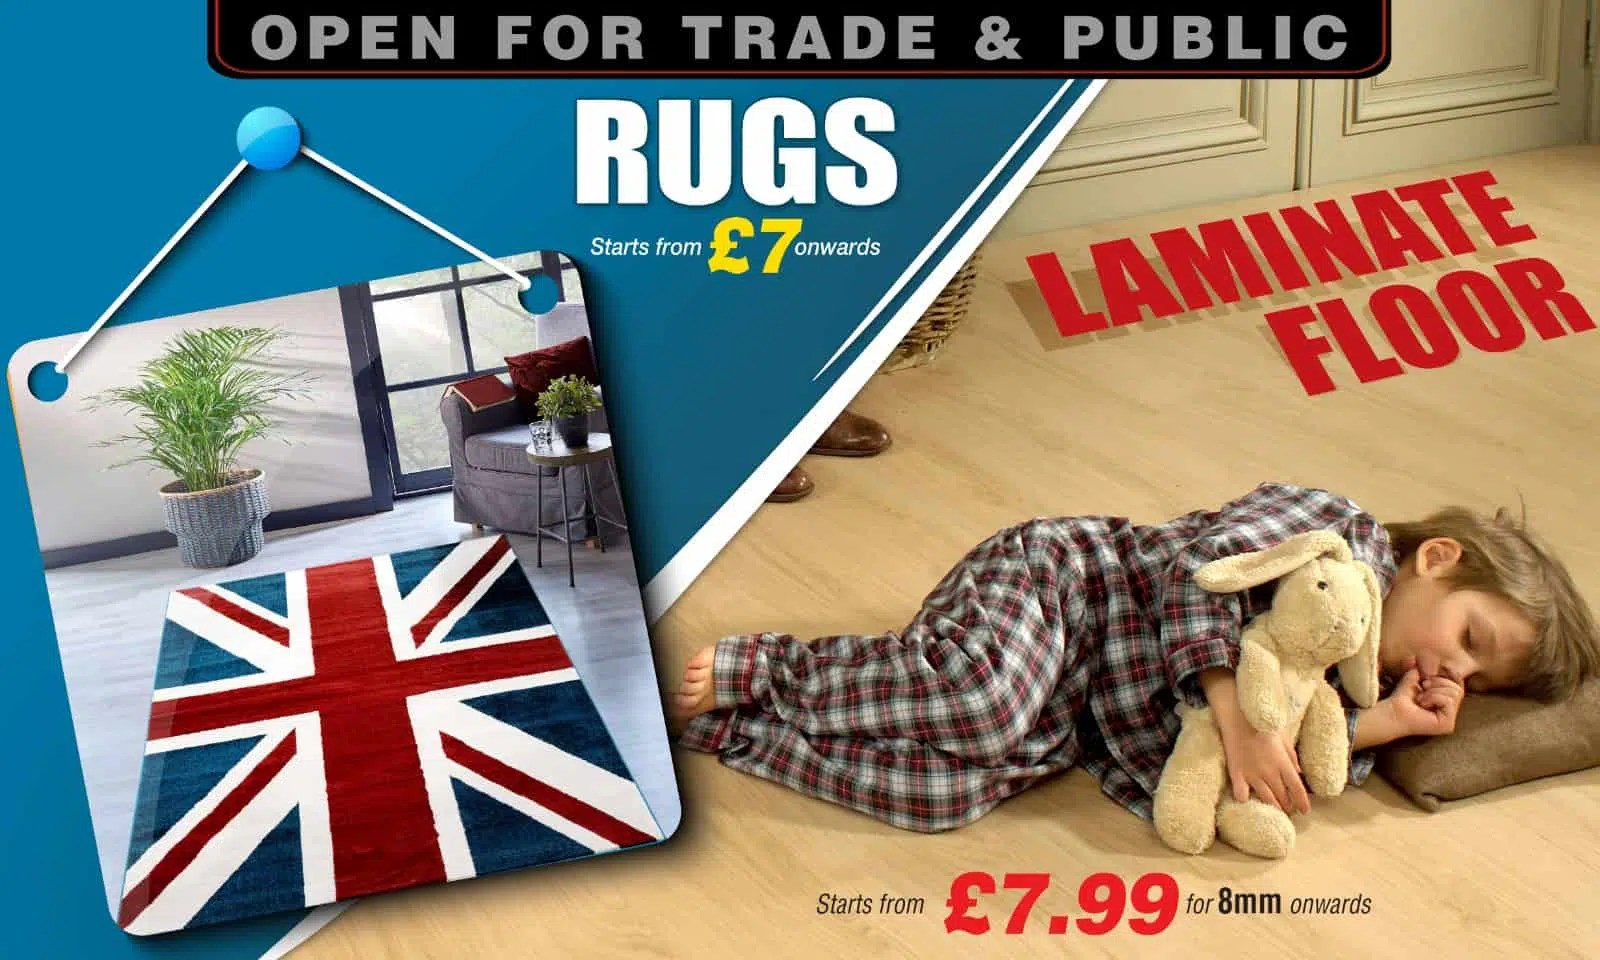 Rugs for £7.99